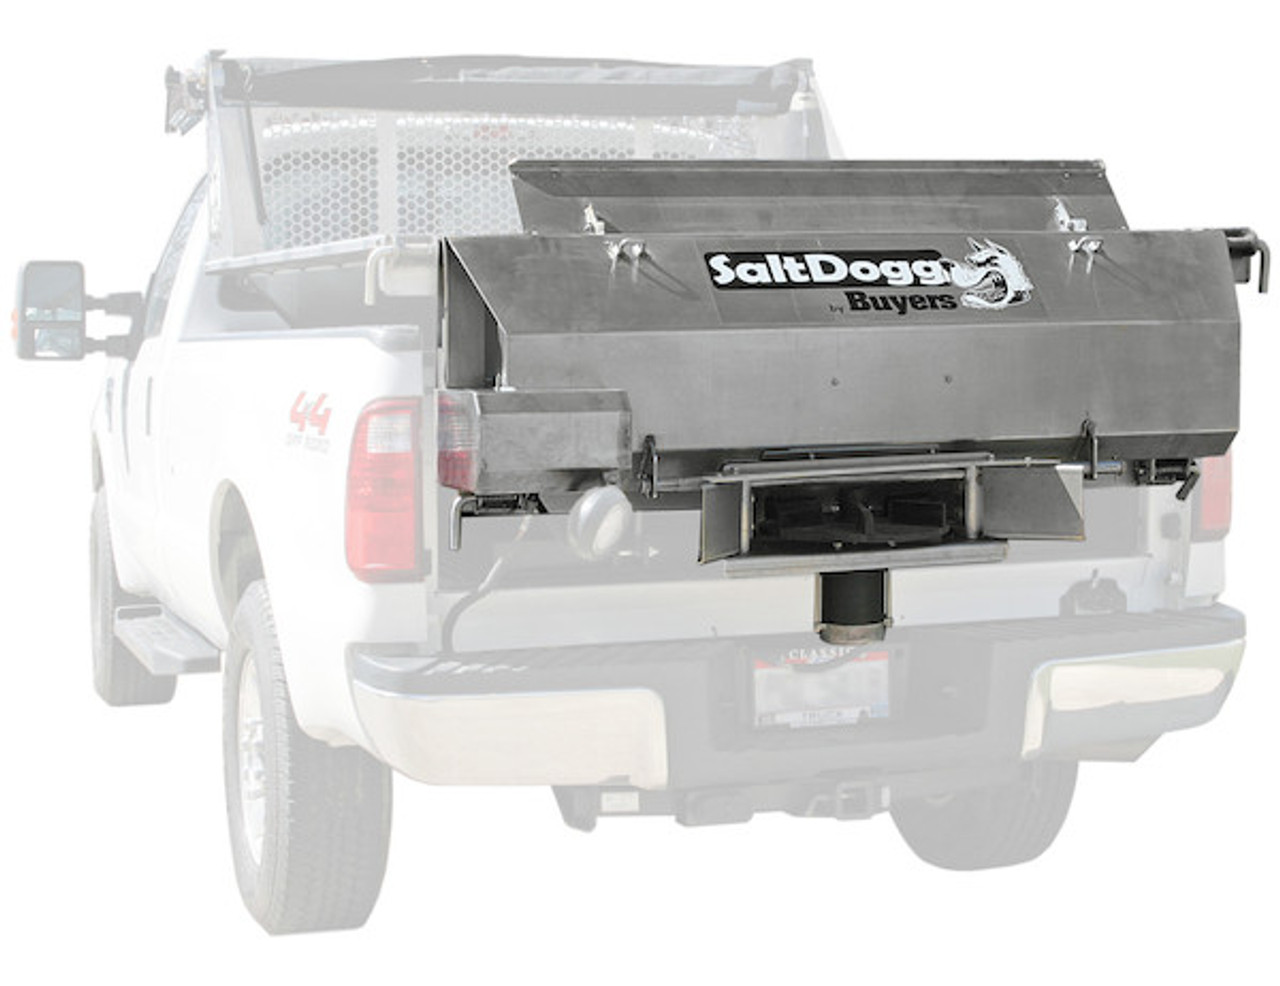 5535000 BUYERS SALTDOGG DUMPERDOGG STAINLESS STEEL REPLACEMENT TAILGATE SALT SPREADER